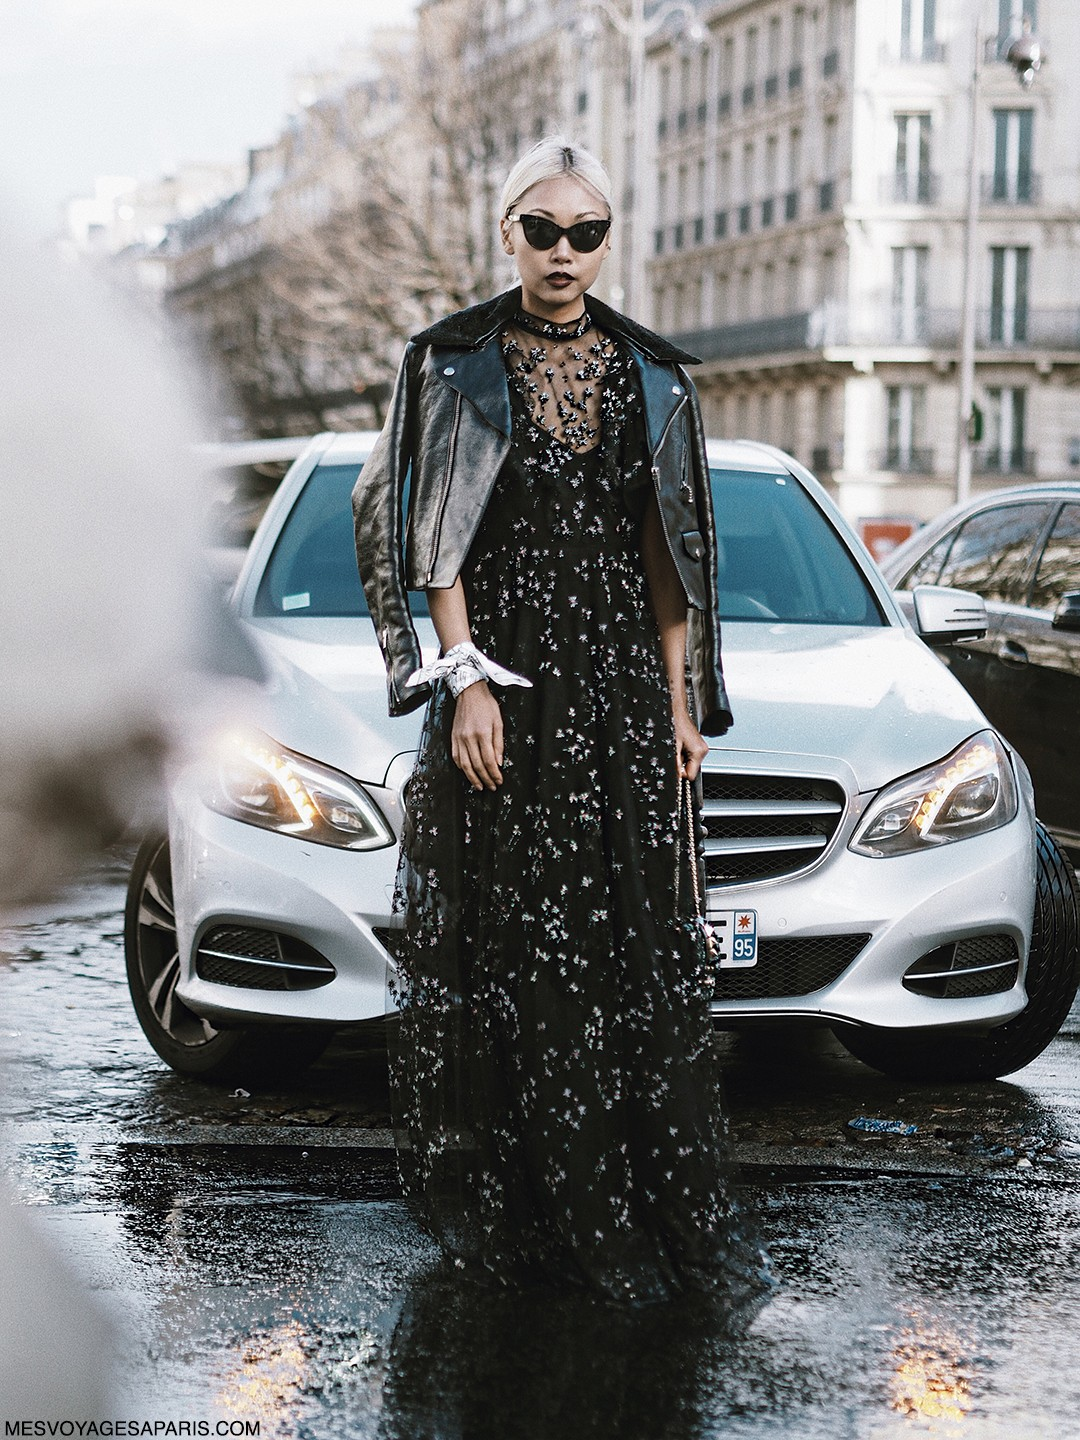 PFW-street-style-march-2017-rainy-paris-mvap